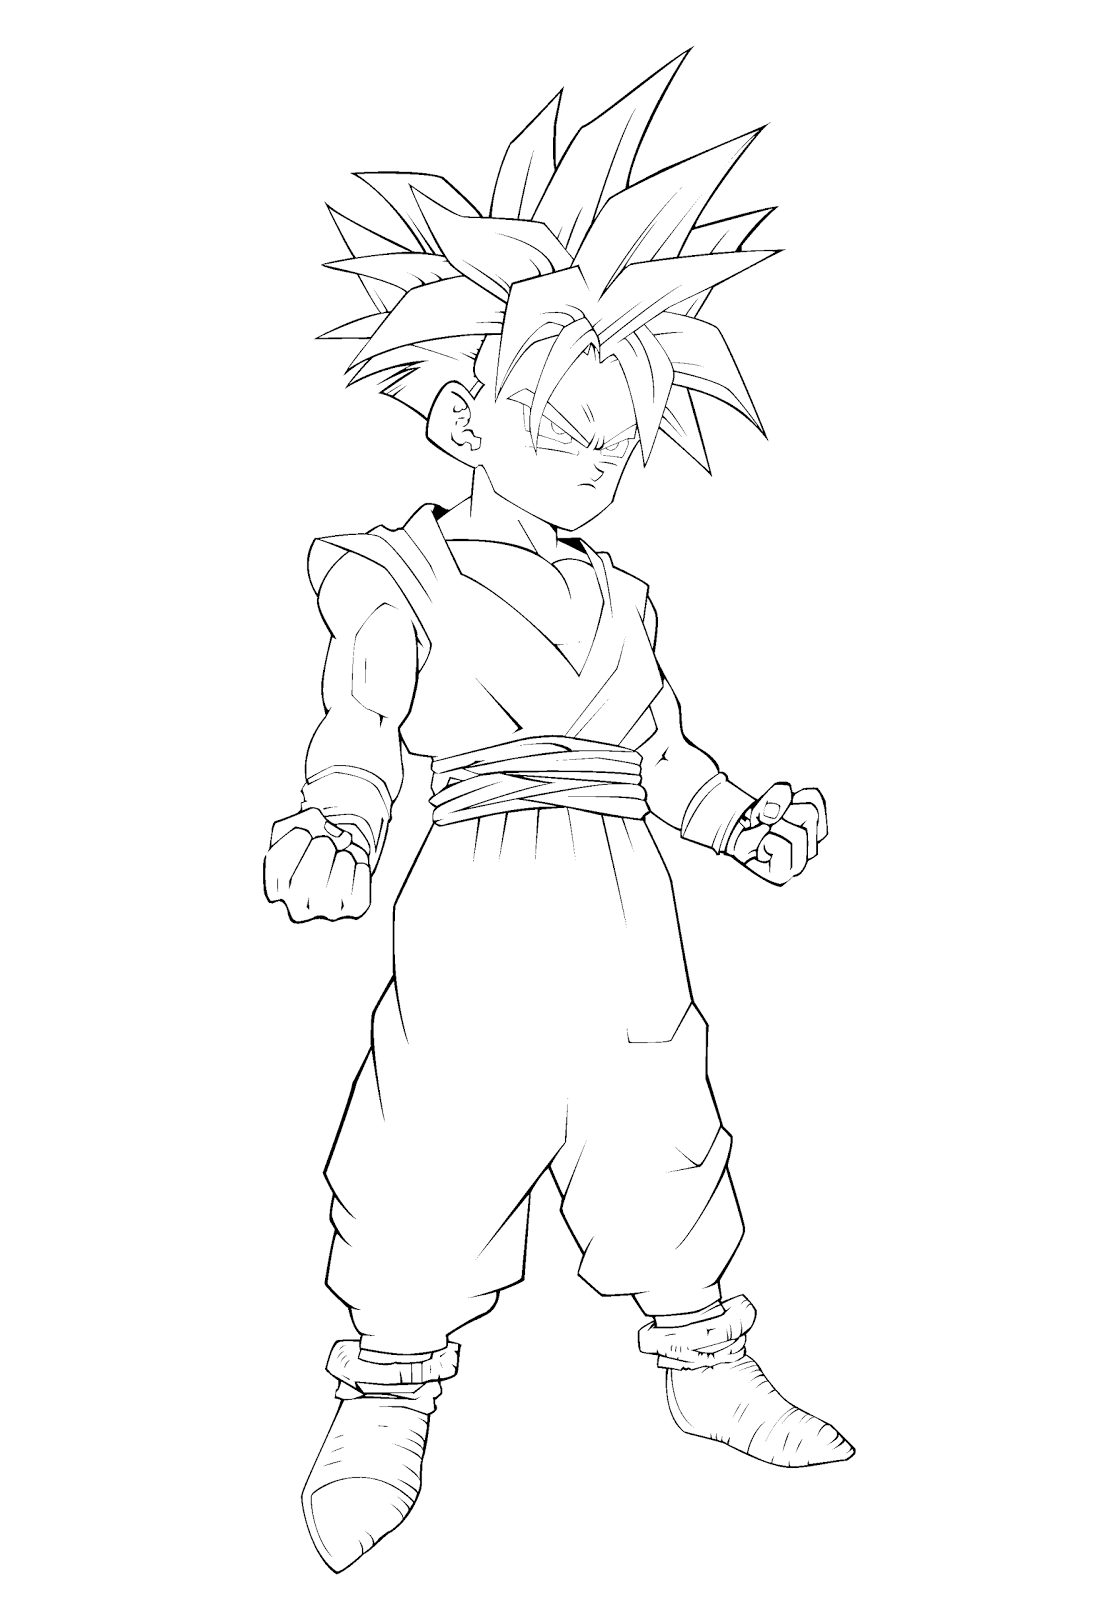 dragon ball z coloring pages gohan dragon ball z coloring pages gohan ball dragon z coloring gohan pages